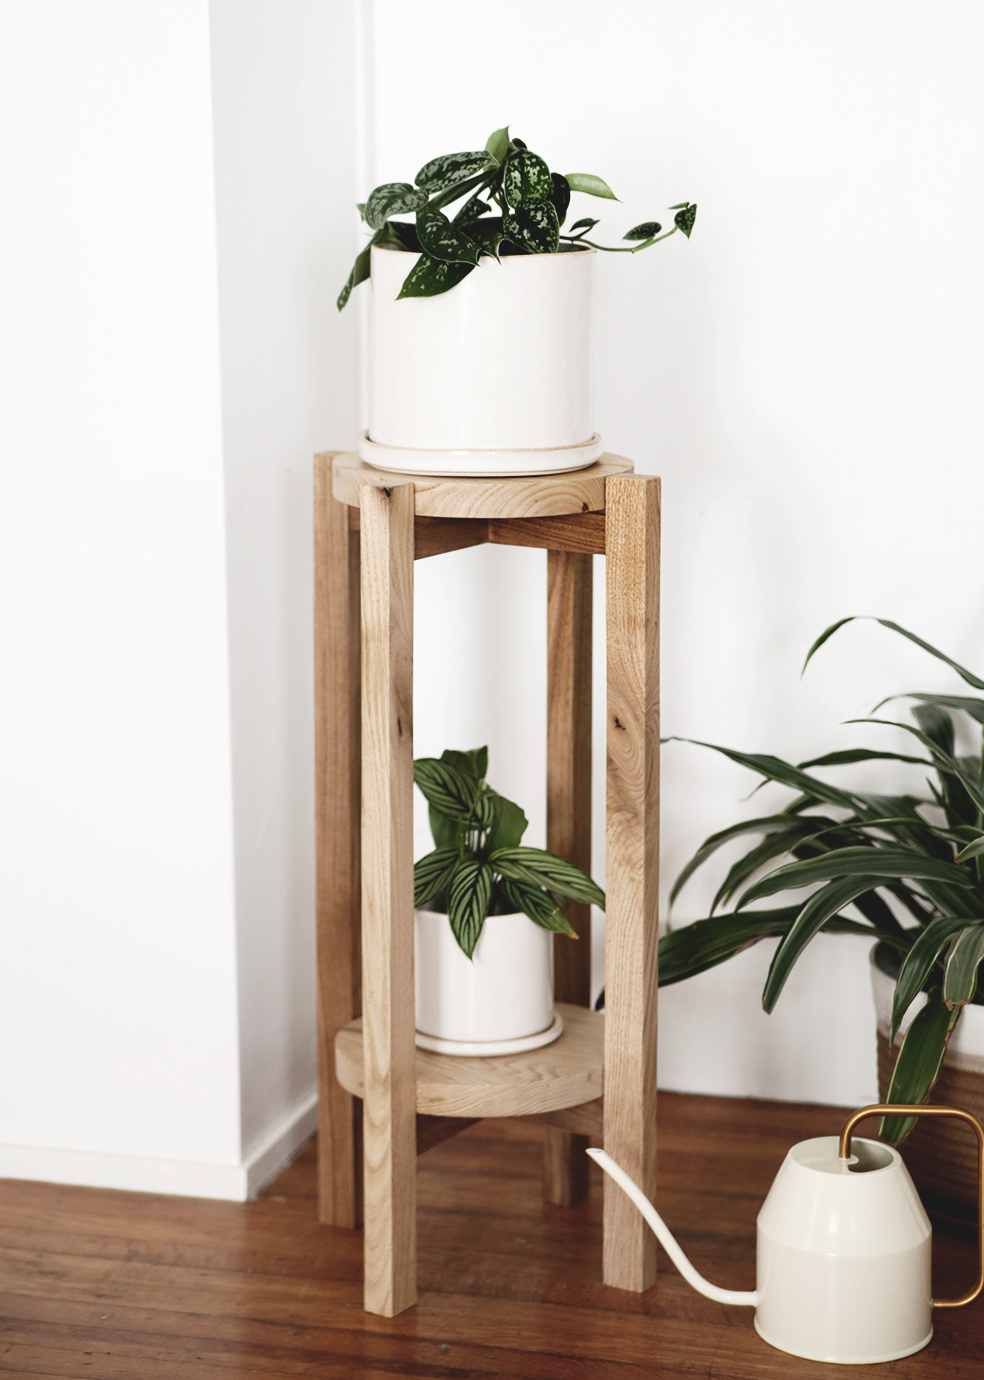 Diy Wood Plant Stand A Simple Diy With A Video Tutorial